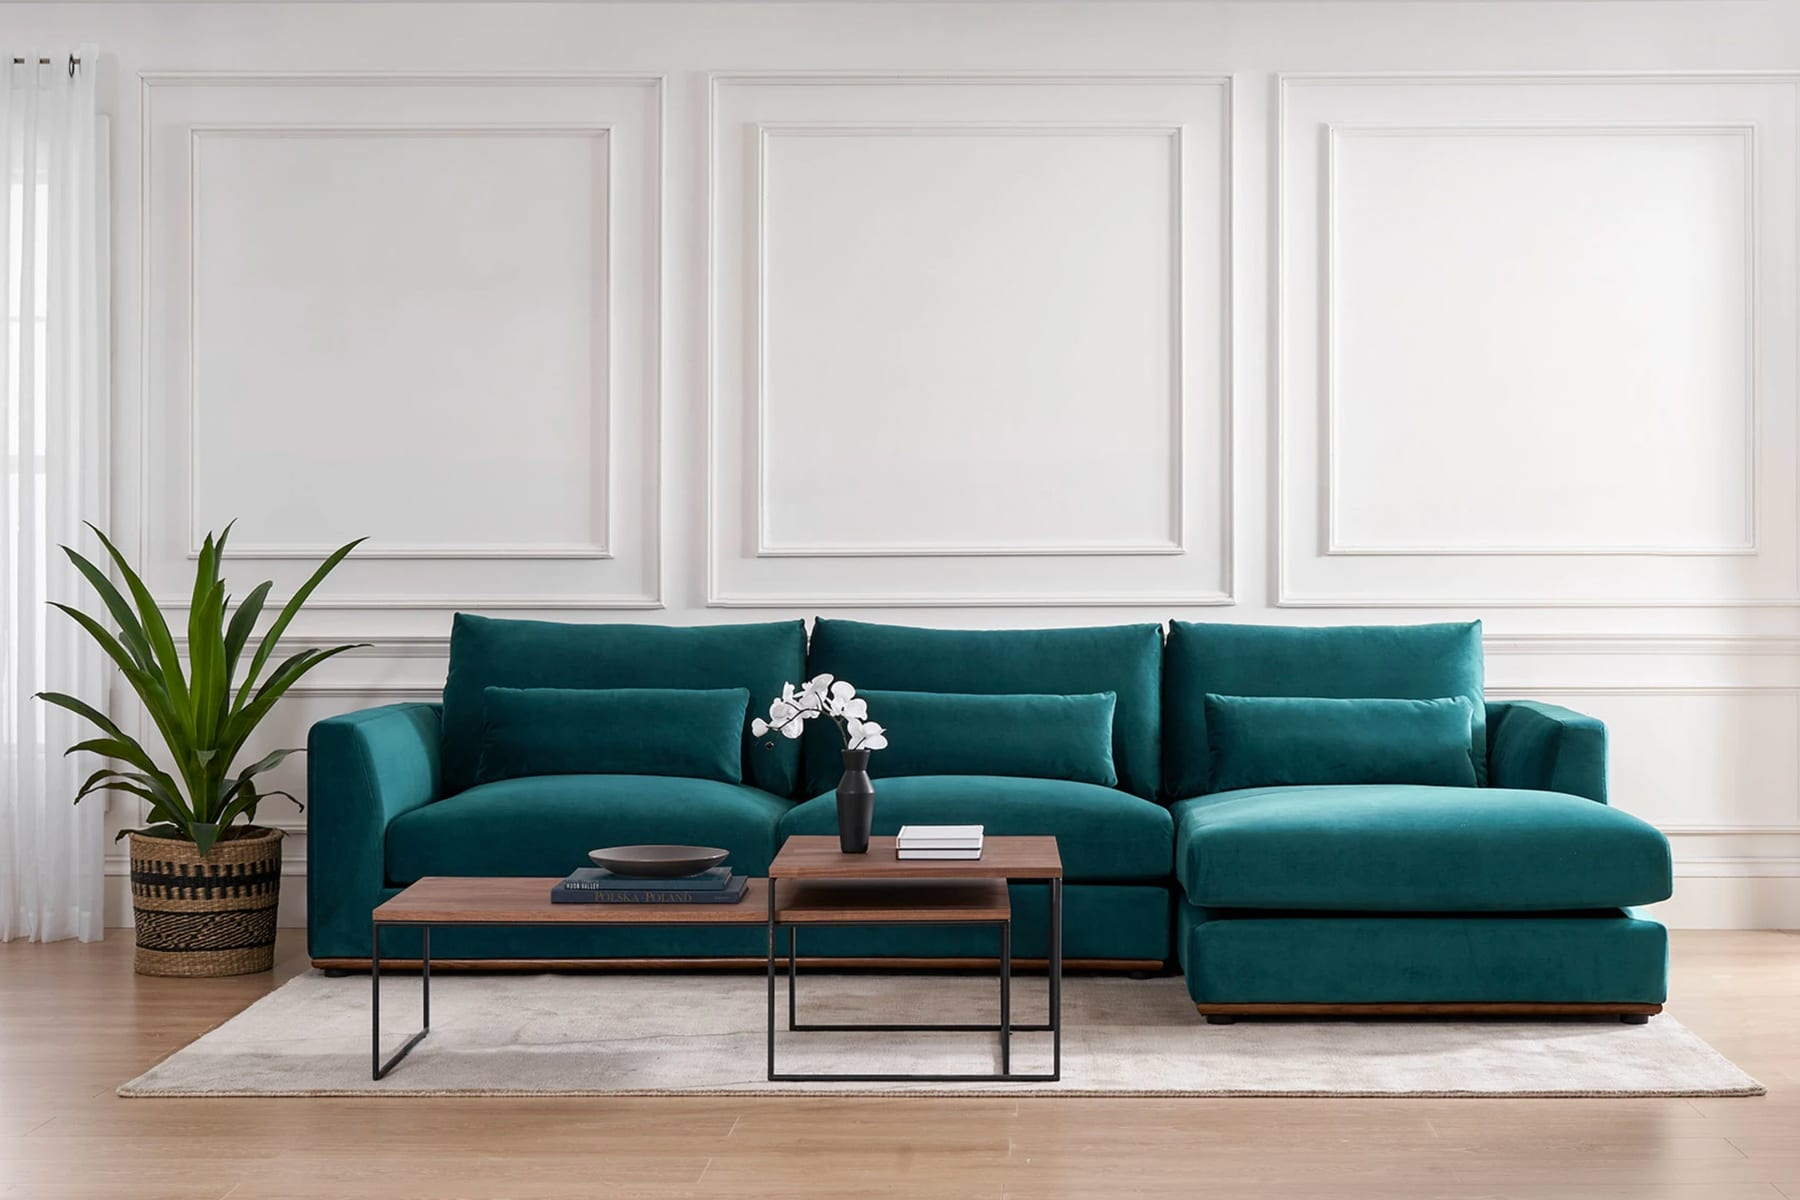 teal velvet sofa, coffee table and potted plant in a bright living room